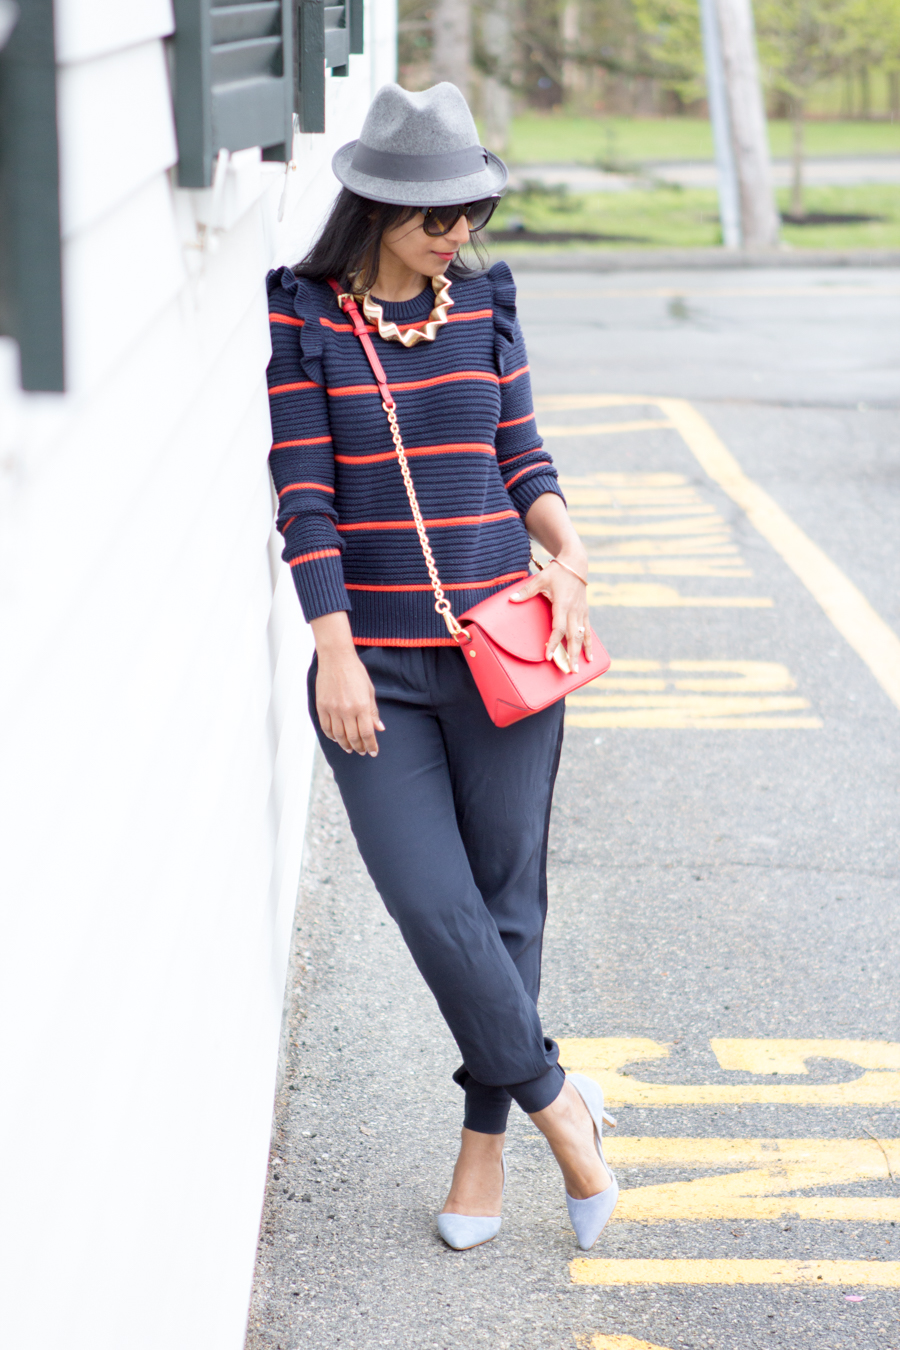 jogger, casual pants, work to weekend, light blue pumps, fedora, banana republic, pullover, navy sweater, striped sweater, spring outfit, spring lookbook, petite fashion, mommy style, easy chic, mommy glam, red bag, dressy casual, fashion blog, petite style, style blog, street style, easy outfit